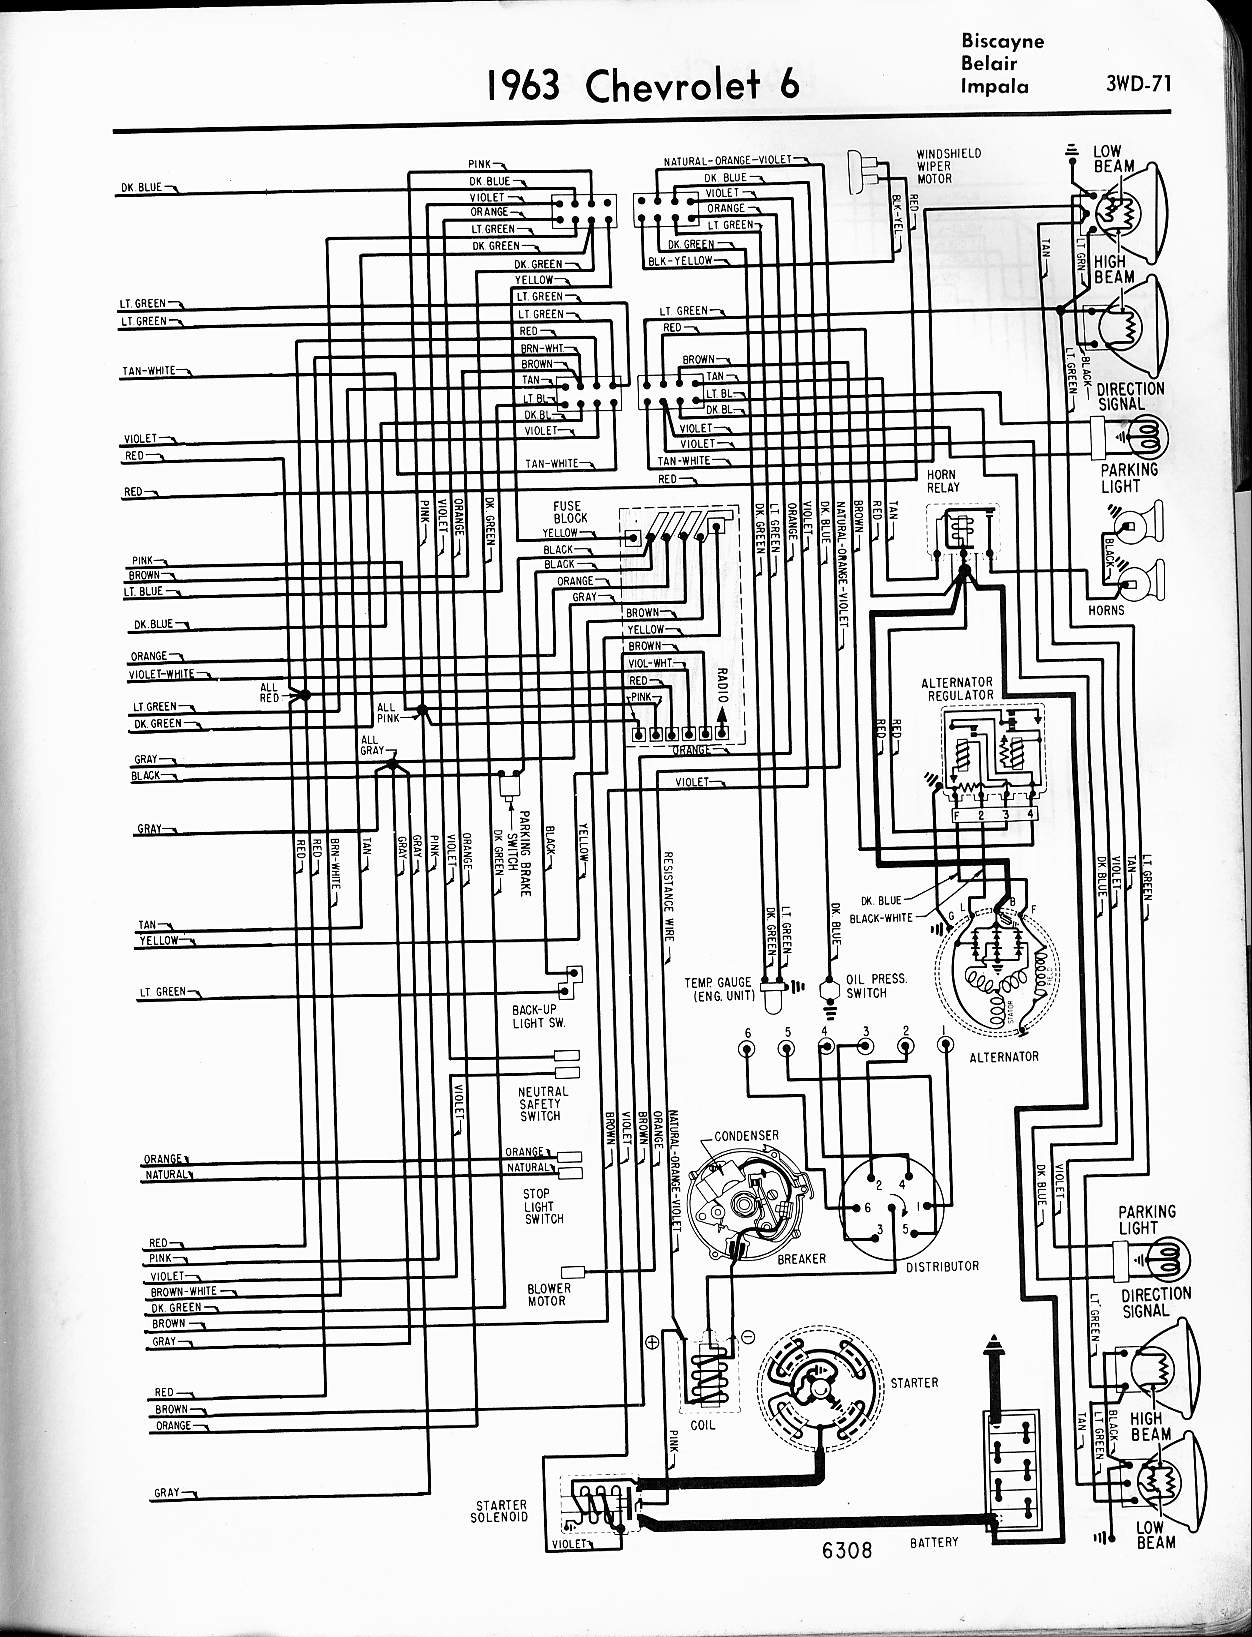 wiring diagrams of 1961 chevrolet v8 biscayne belair and impala